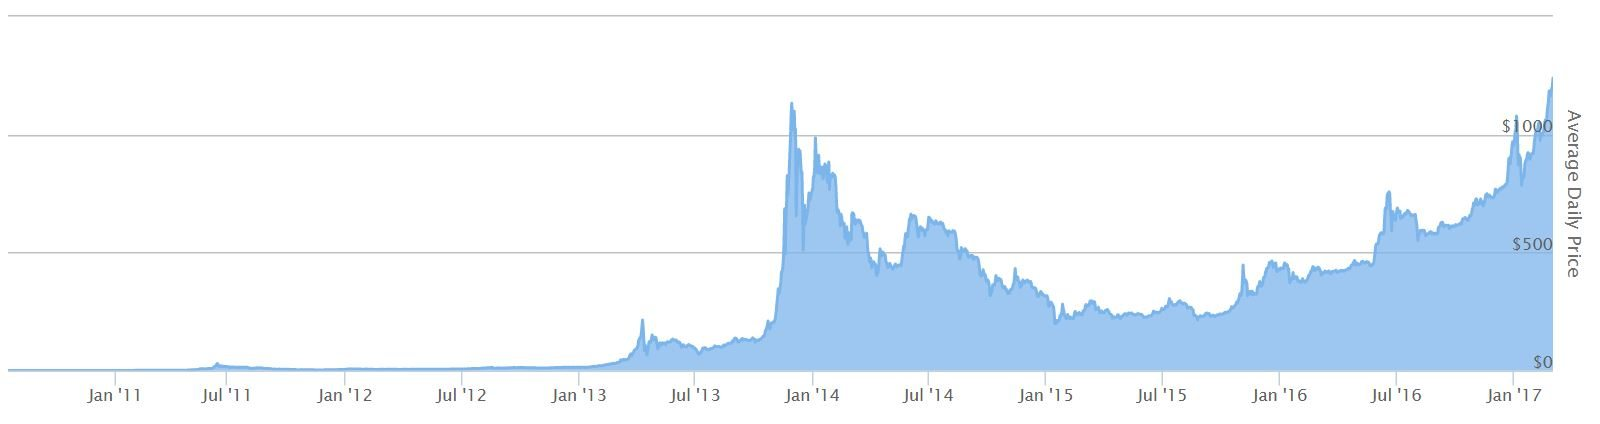 After blogging about bitcoin for six years, I've closely followed ...